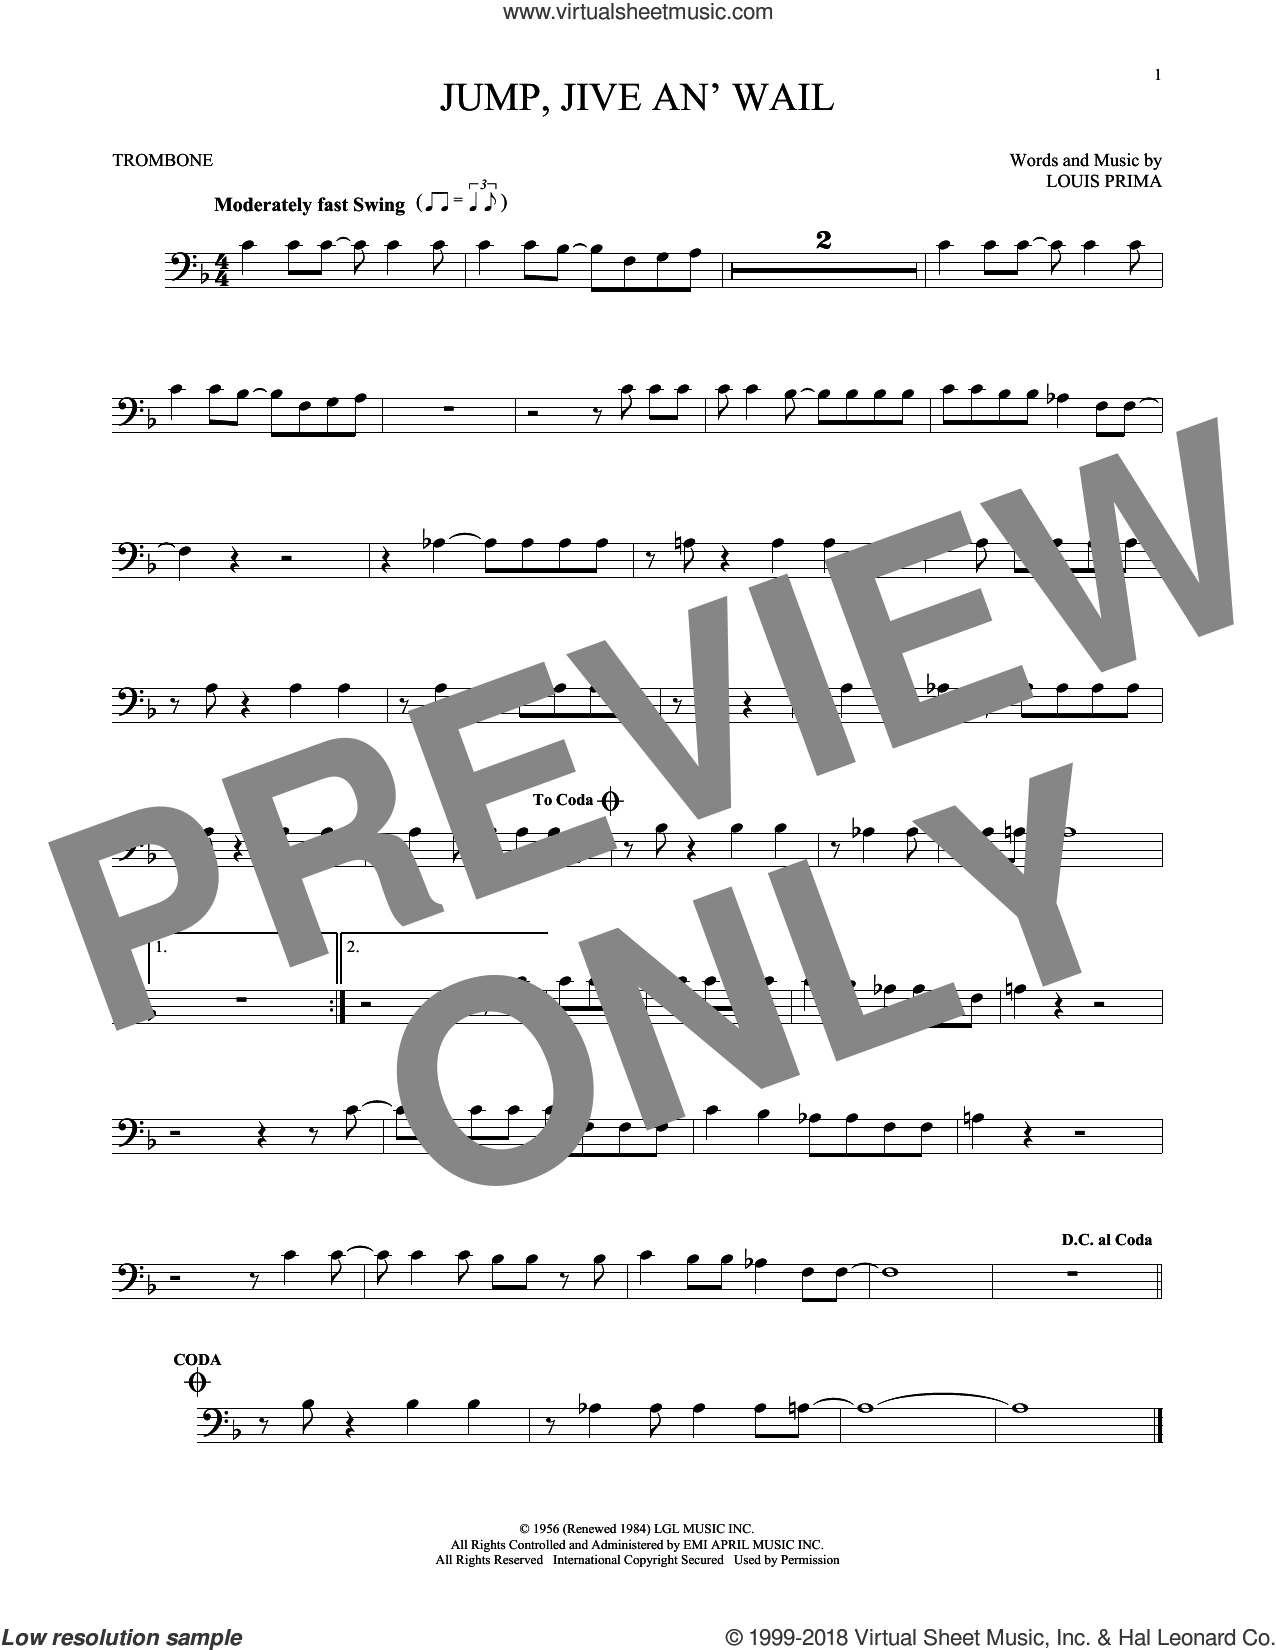 Jump, Jive An' Wail sheet music for trombone solo by Louis Prima and Brian Setzer, intermediate skill level